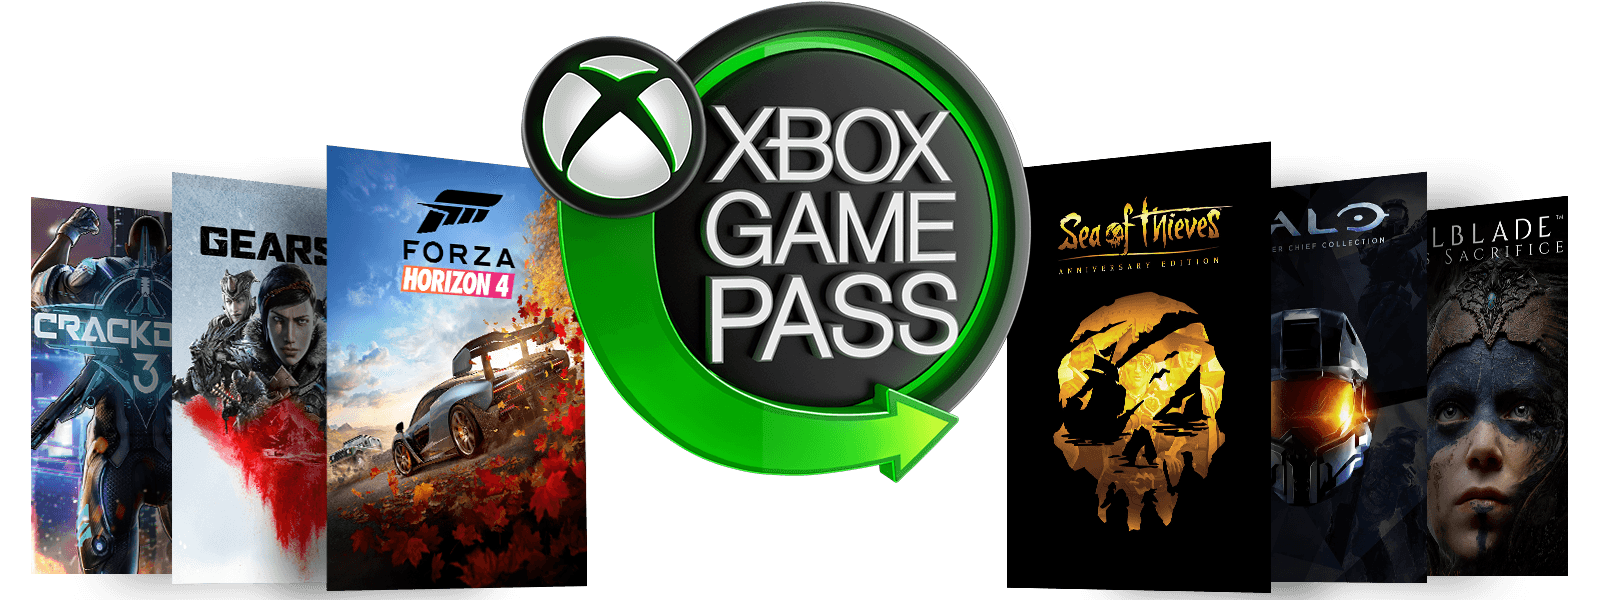 Imágenes de la caja de Sea of Thieves, PLAYERUNKNOWNS Battleground, Forza Horizon 4, Crackdown 3, Halo The Master Chief Collection y Hellblade Senuas Sacrifice alrededor del logotipo de cartel de neón de Xbox Game Pass